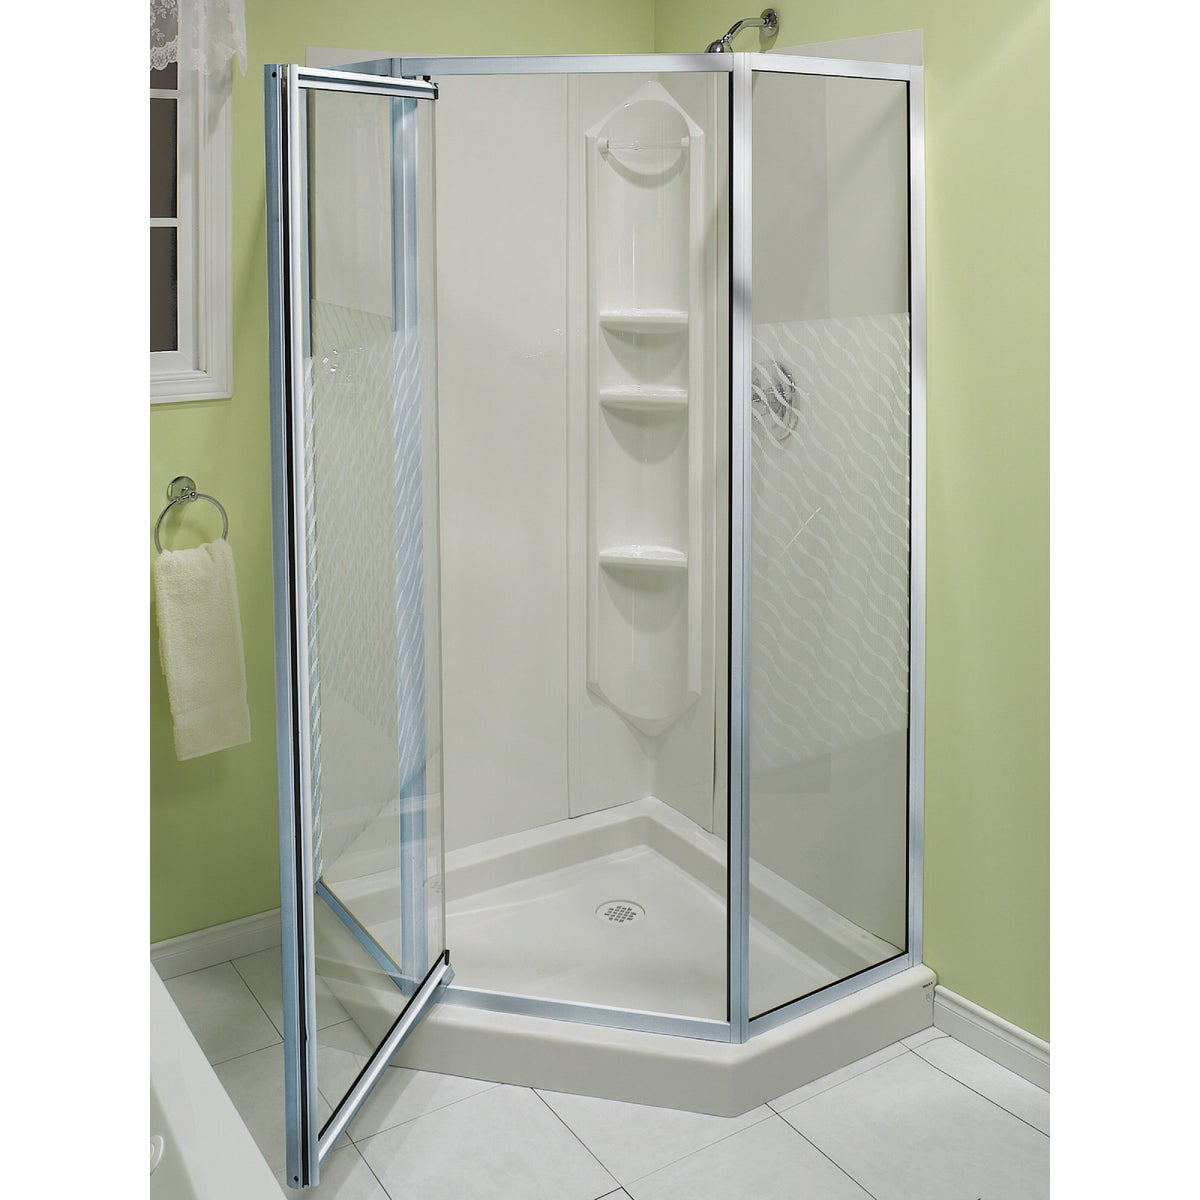 CHROME NEO-ANGLE SHOWER - 101694-084 by Maax Bath